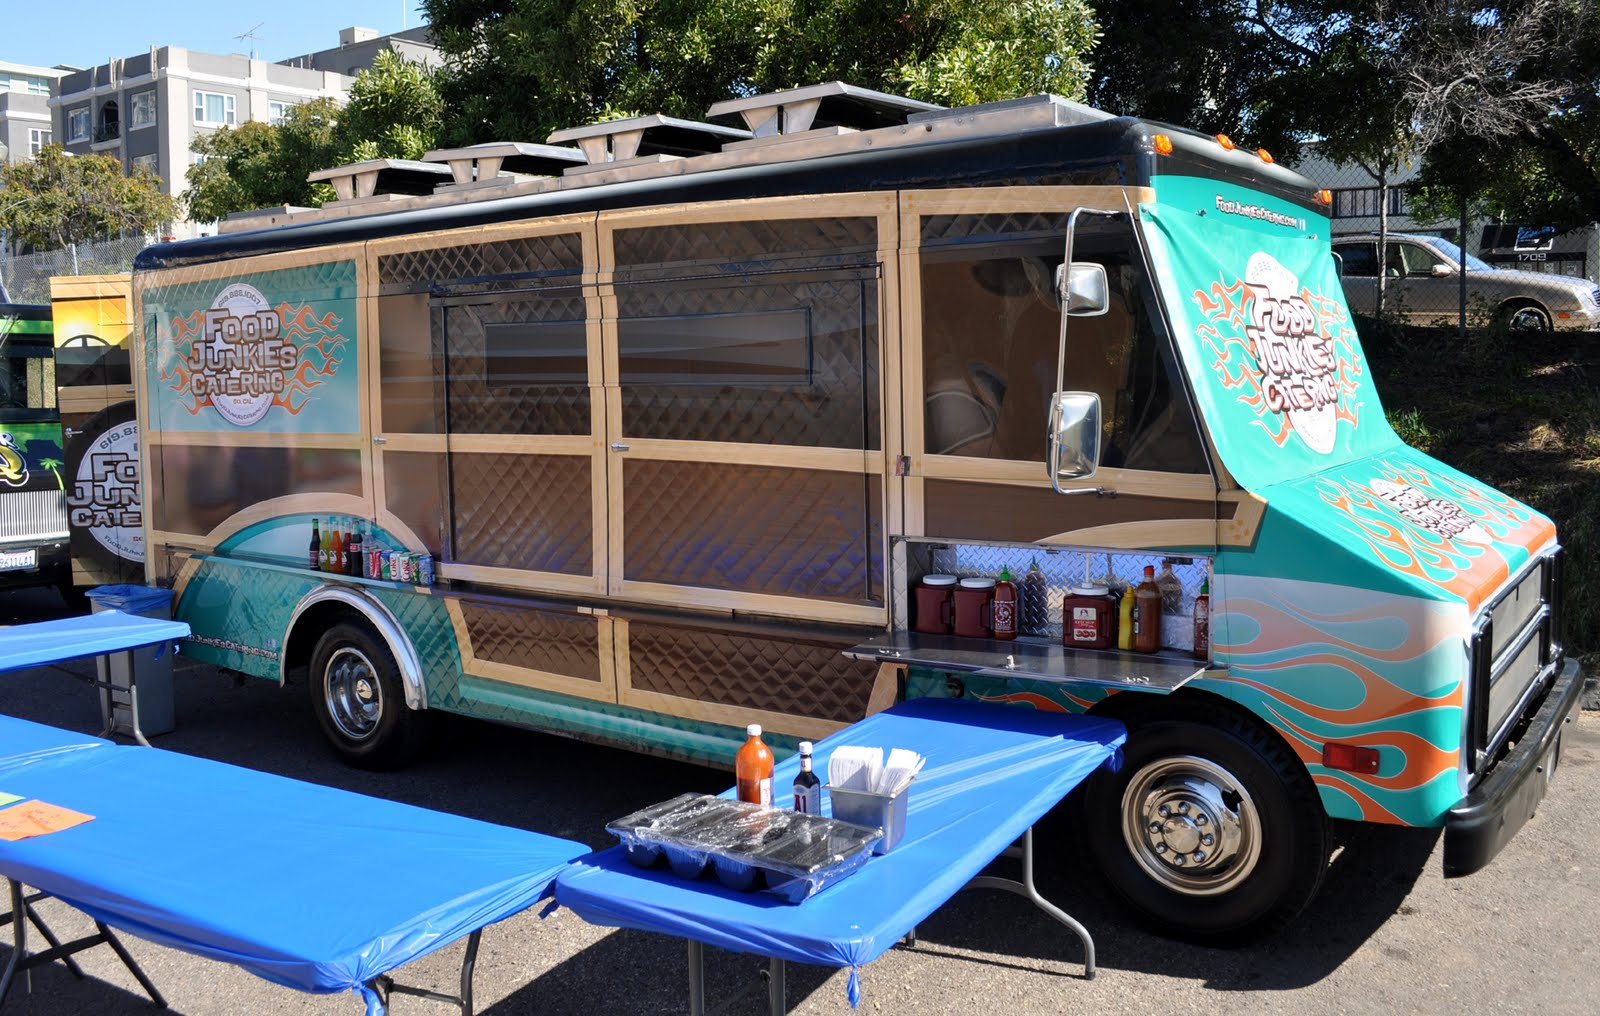 Paris creperie wins best food truck graphic design contest food trucks pinterest food truck food and food truck interior